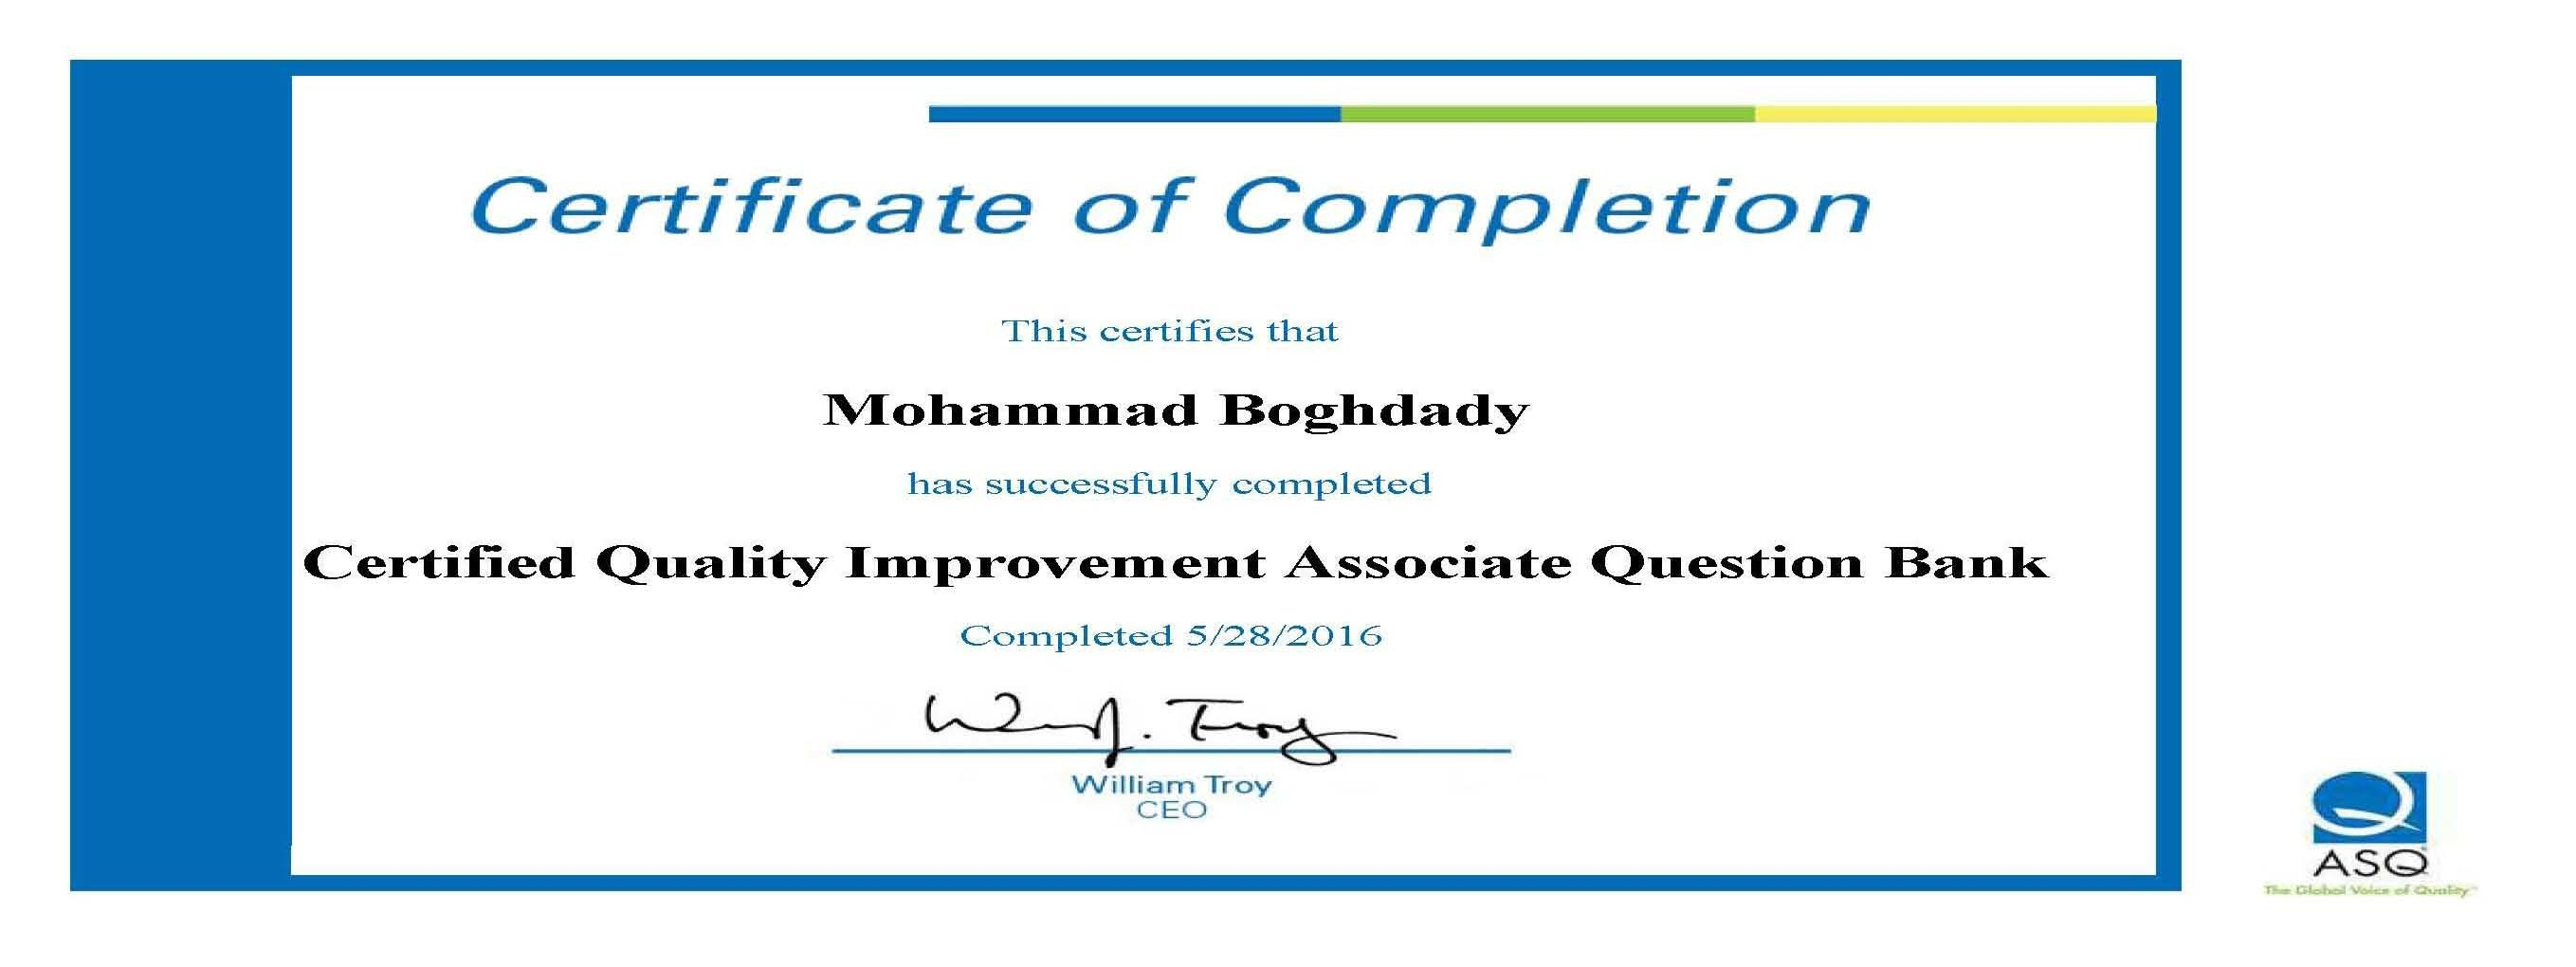 Mohammad boghdady bayt asq certified quality improvement associate question bank certificate certificate xflitez Choice Image